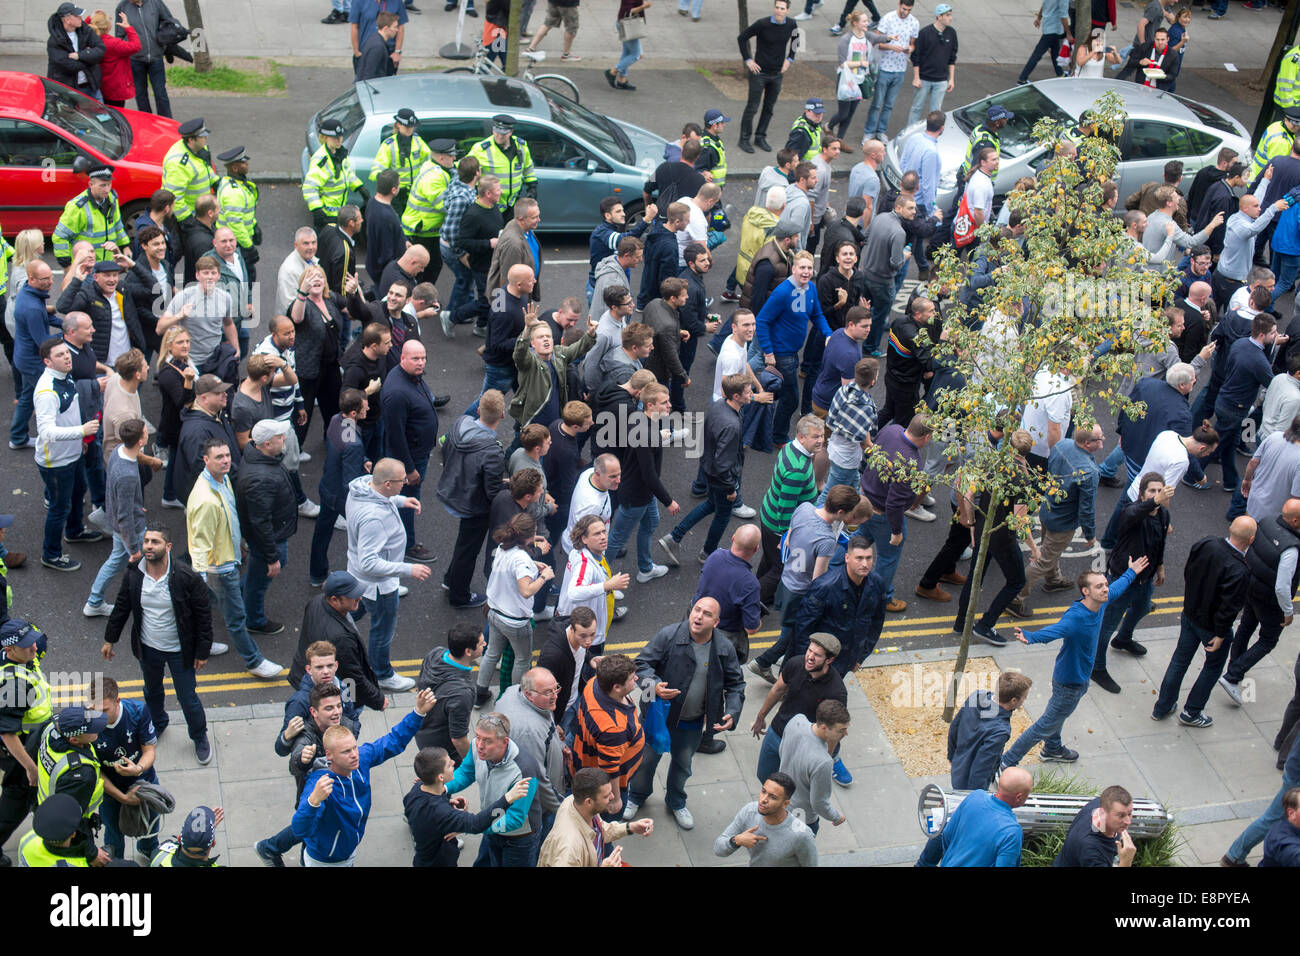 Spurs fans escorted police derby match Arsenal crowd - Stock Image